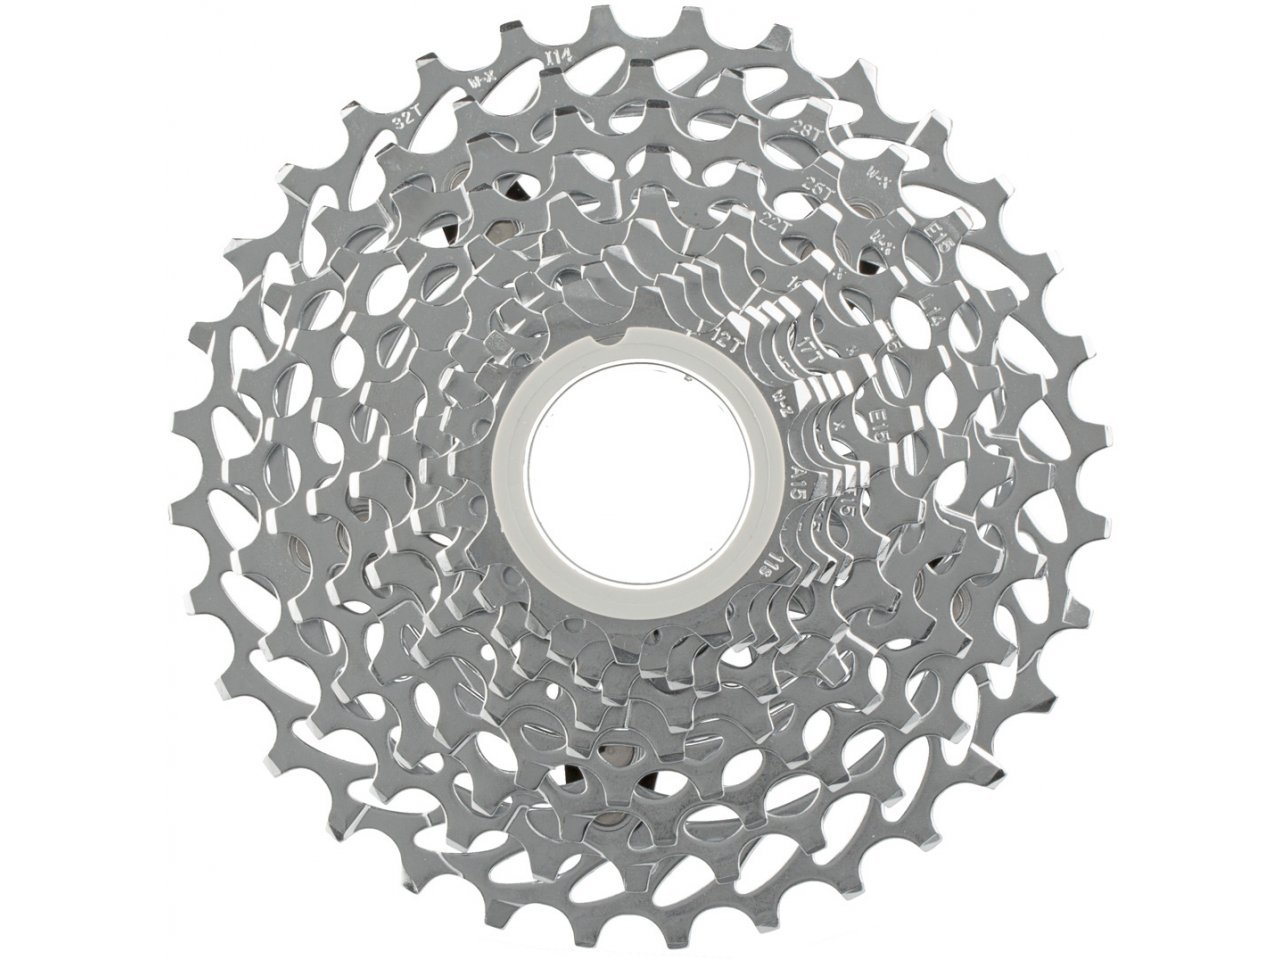 SRAM PG-1170 11-32 11-Speed Cassette